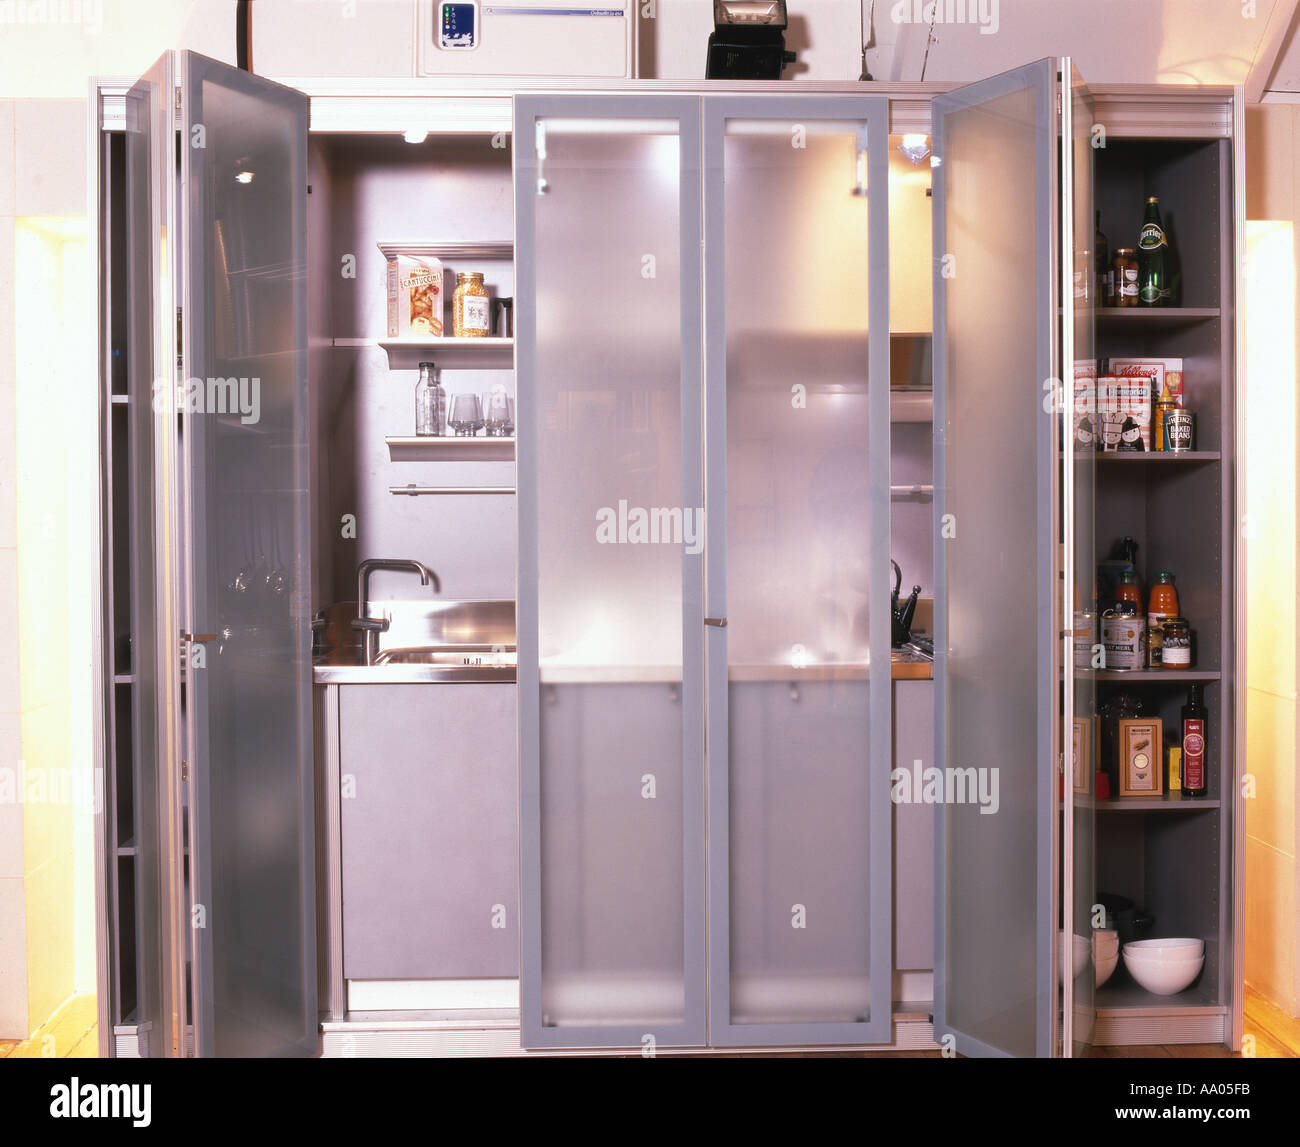 Small Spaces Kitchen In Cupboard With Sliding Doors Overall With